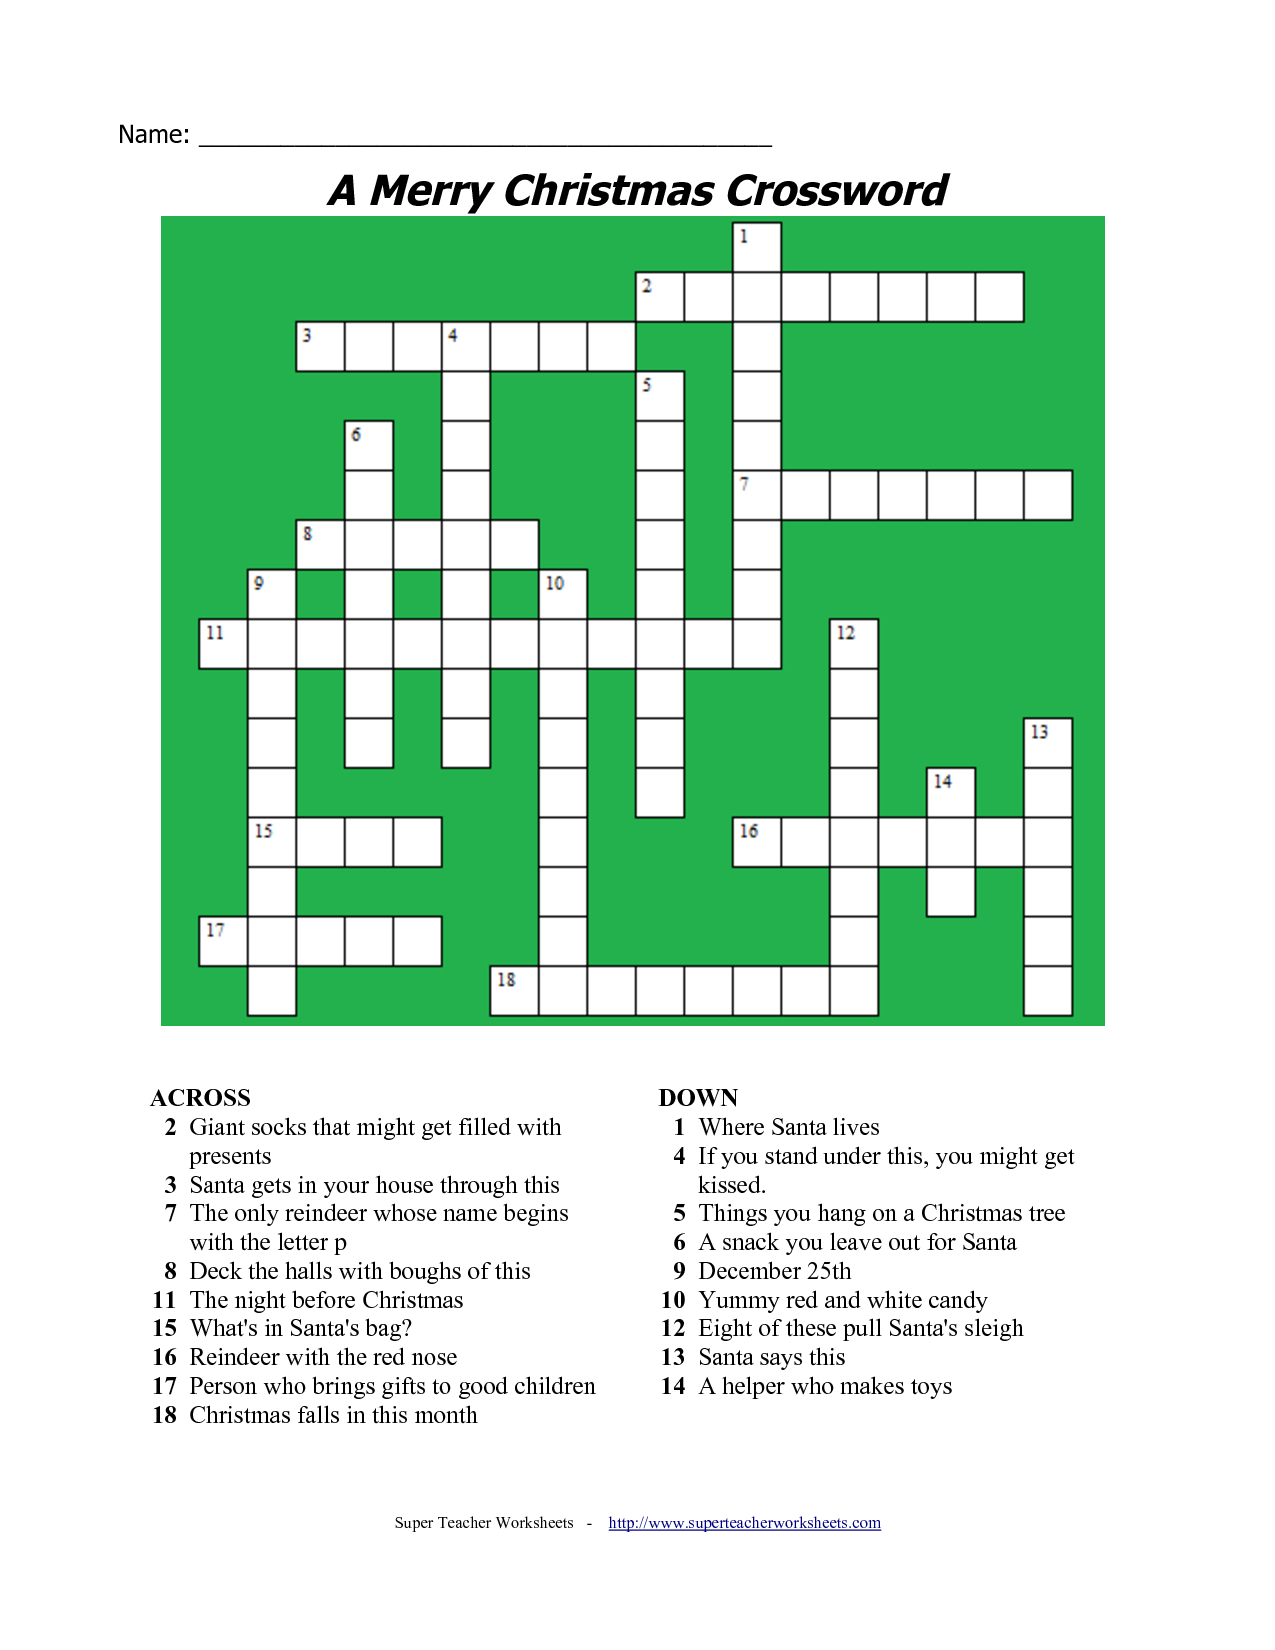 20 Fun Printable Christmas Crossword Puzzles | Kittybabylove - Printable Christmas Crossword Puzzle For Adults